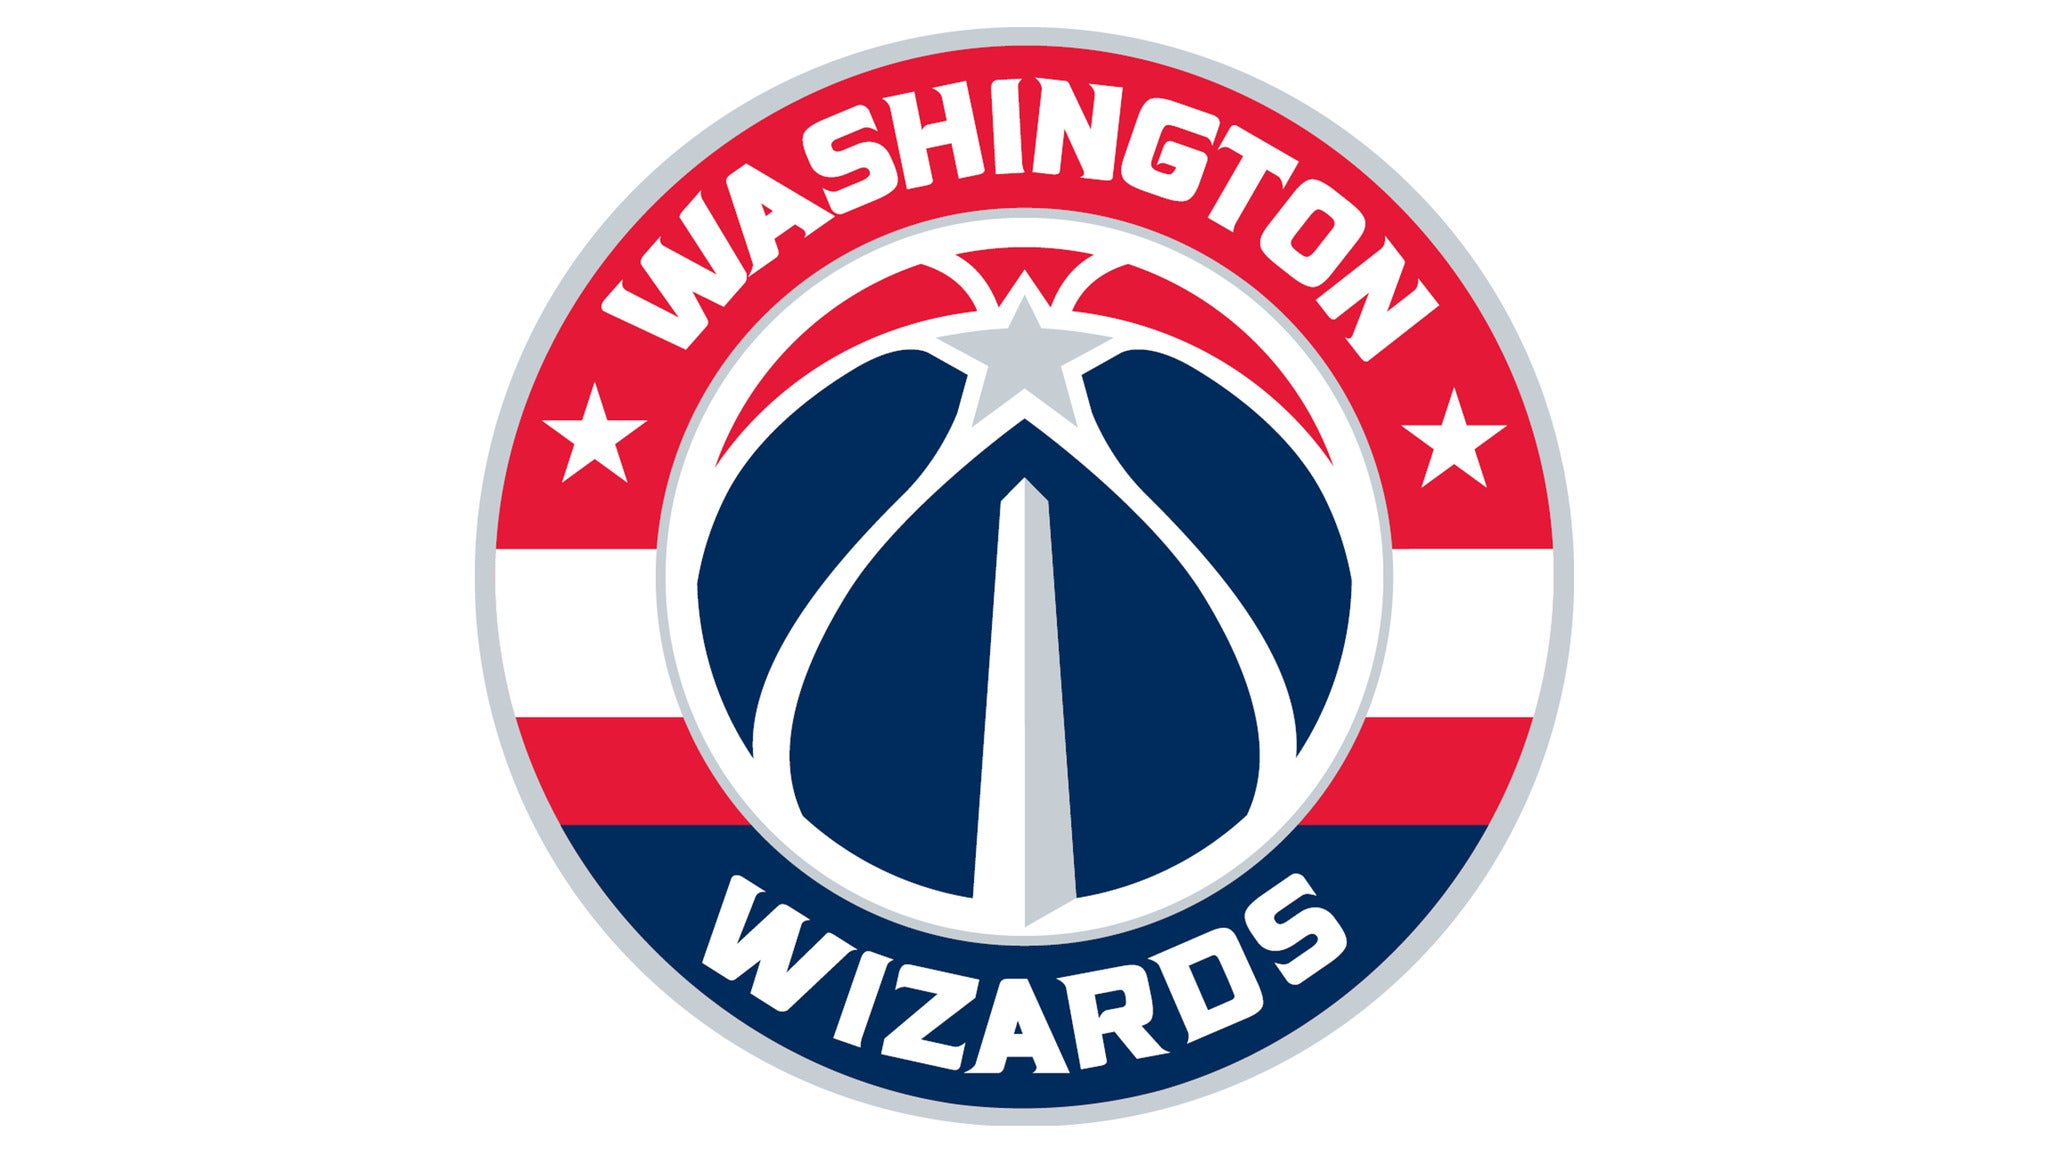 Washington Wizards vs. Charlotte Hornets